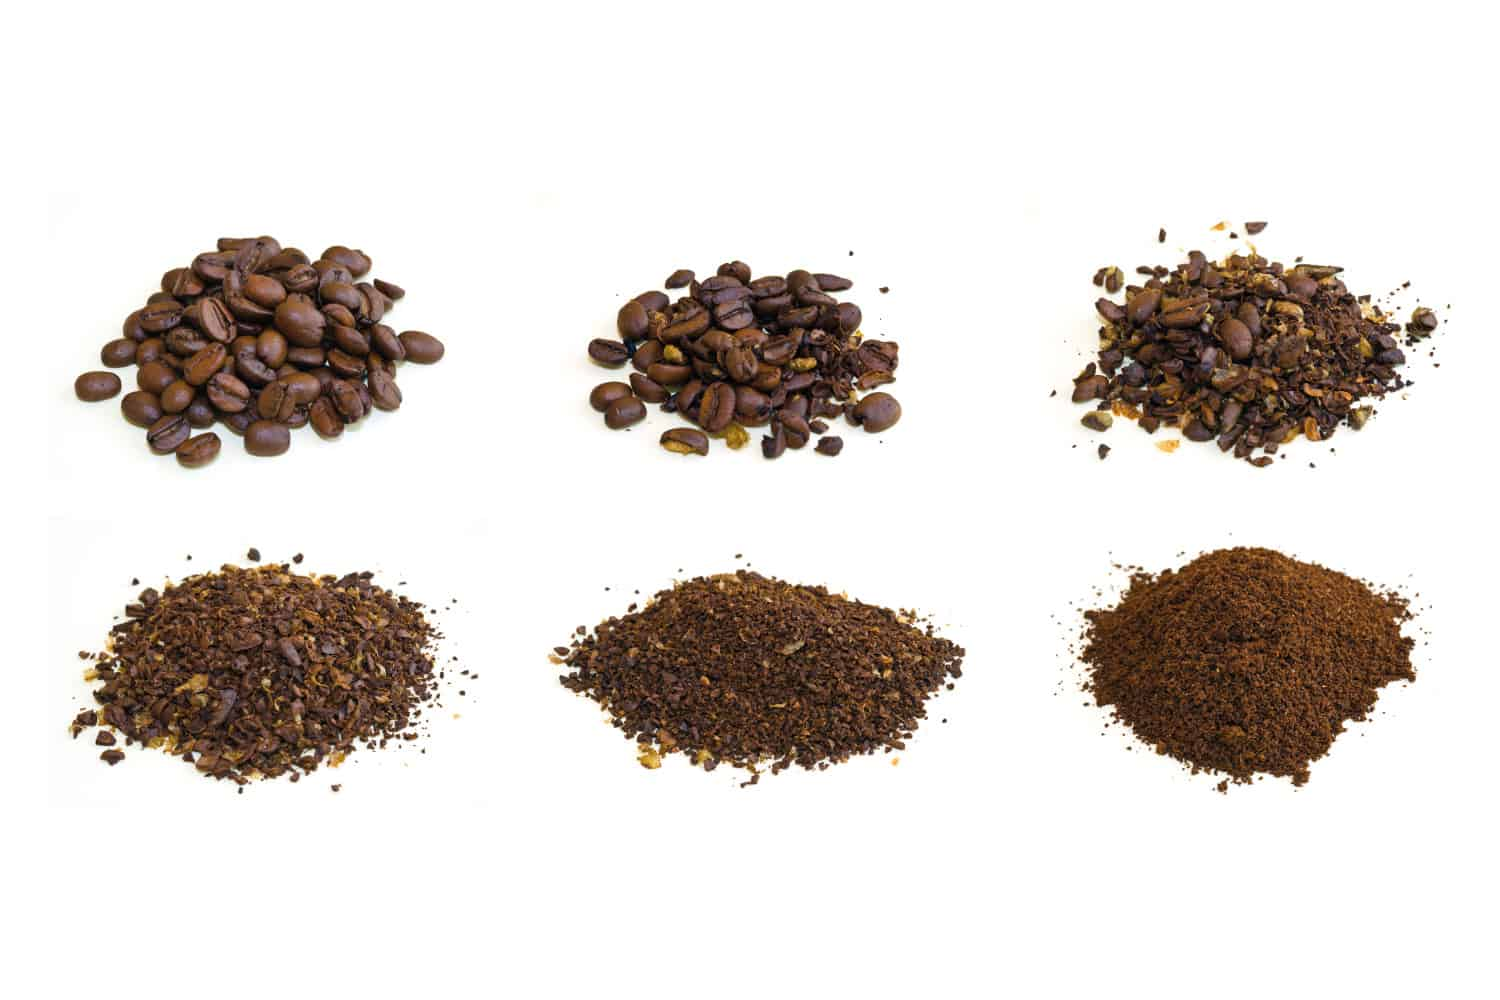 photo of arabica coffee beans at various stages of grinding